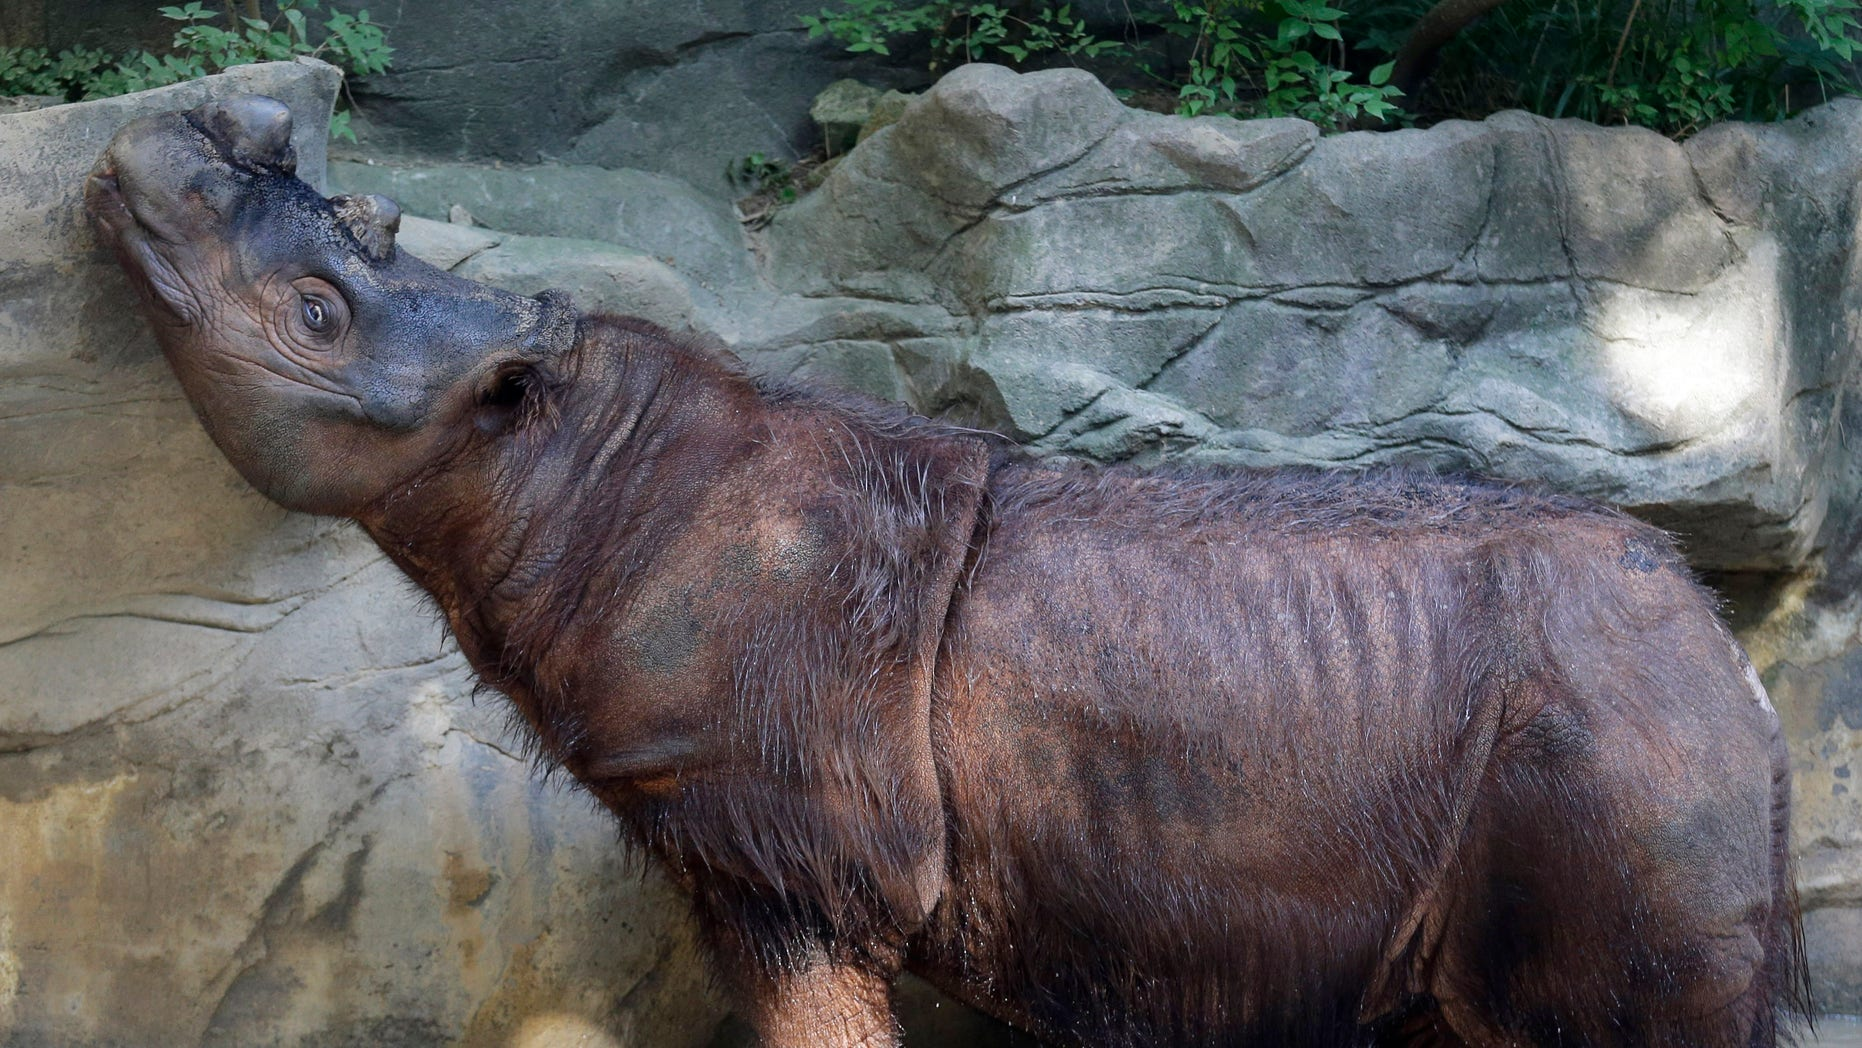 In this Wednesday, July 17, 2013 photo, Harapan, a male Sumatran rhino, sniffs the air, at the Cincinnati Zoo in Cincinnati. His sister, Suci, is kept in an area next to his. With the global population of Sumatran rhinos plunging at an alarming rate, Cincinnati Zoo experts who have some success with captive breeding are trying something they admit is a desperation effort _ bringing back the brother of a female rhino in hopes they will mate. (AP Photo/Al Behrman)